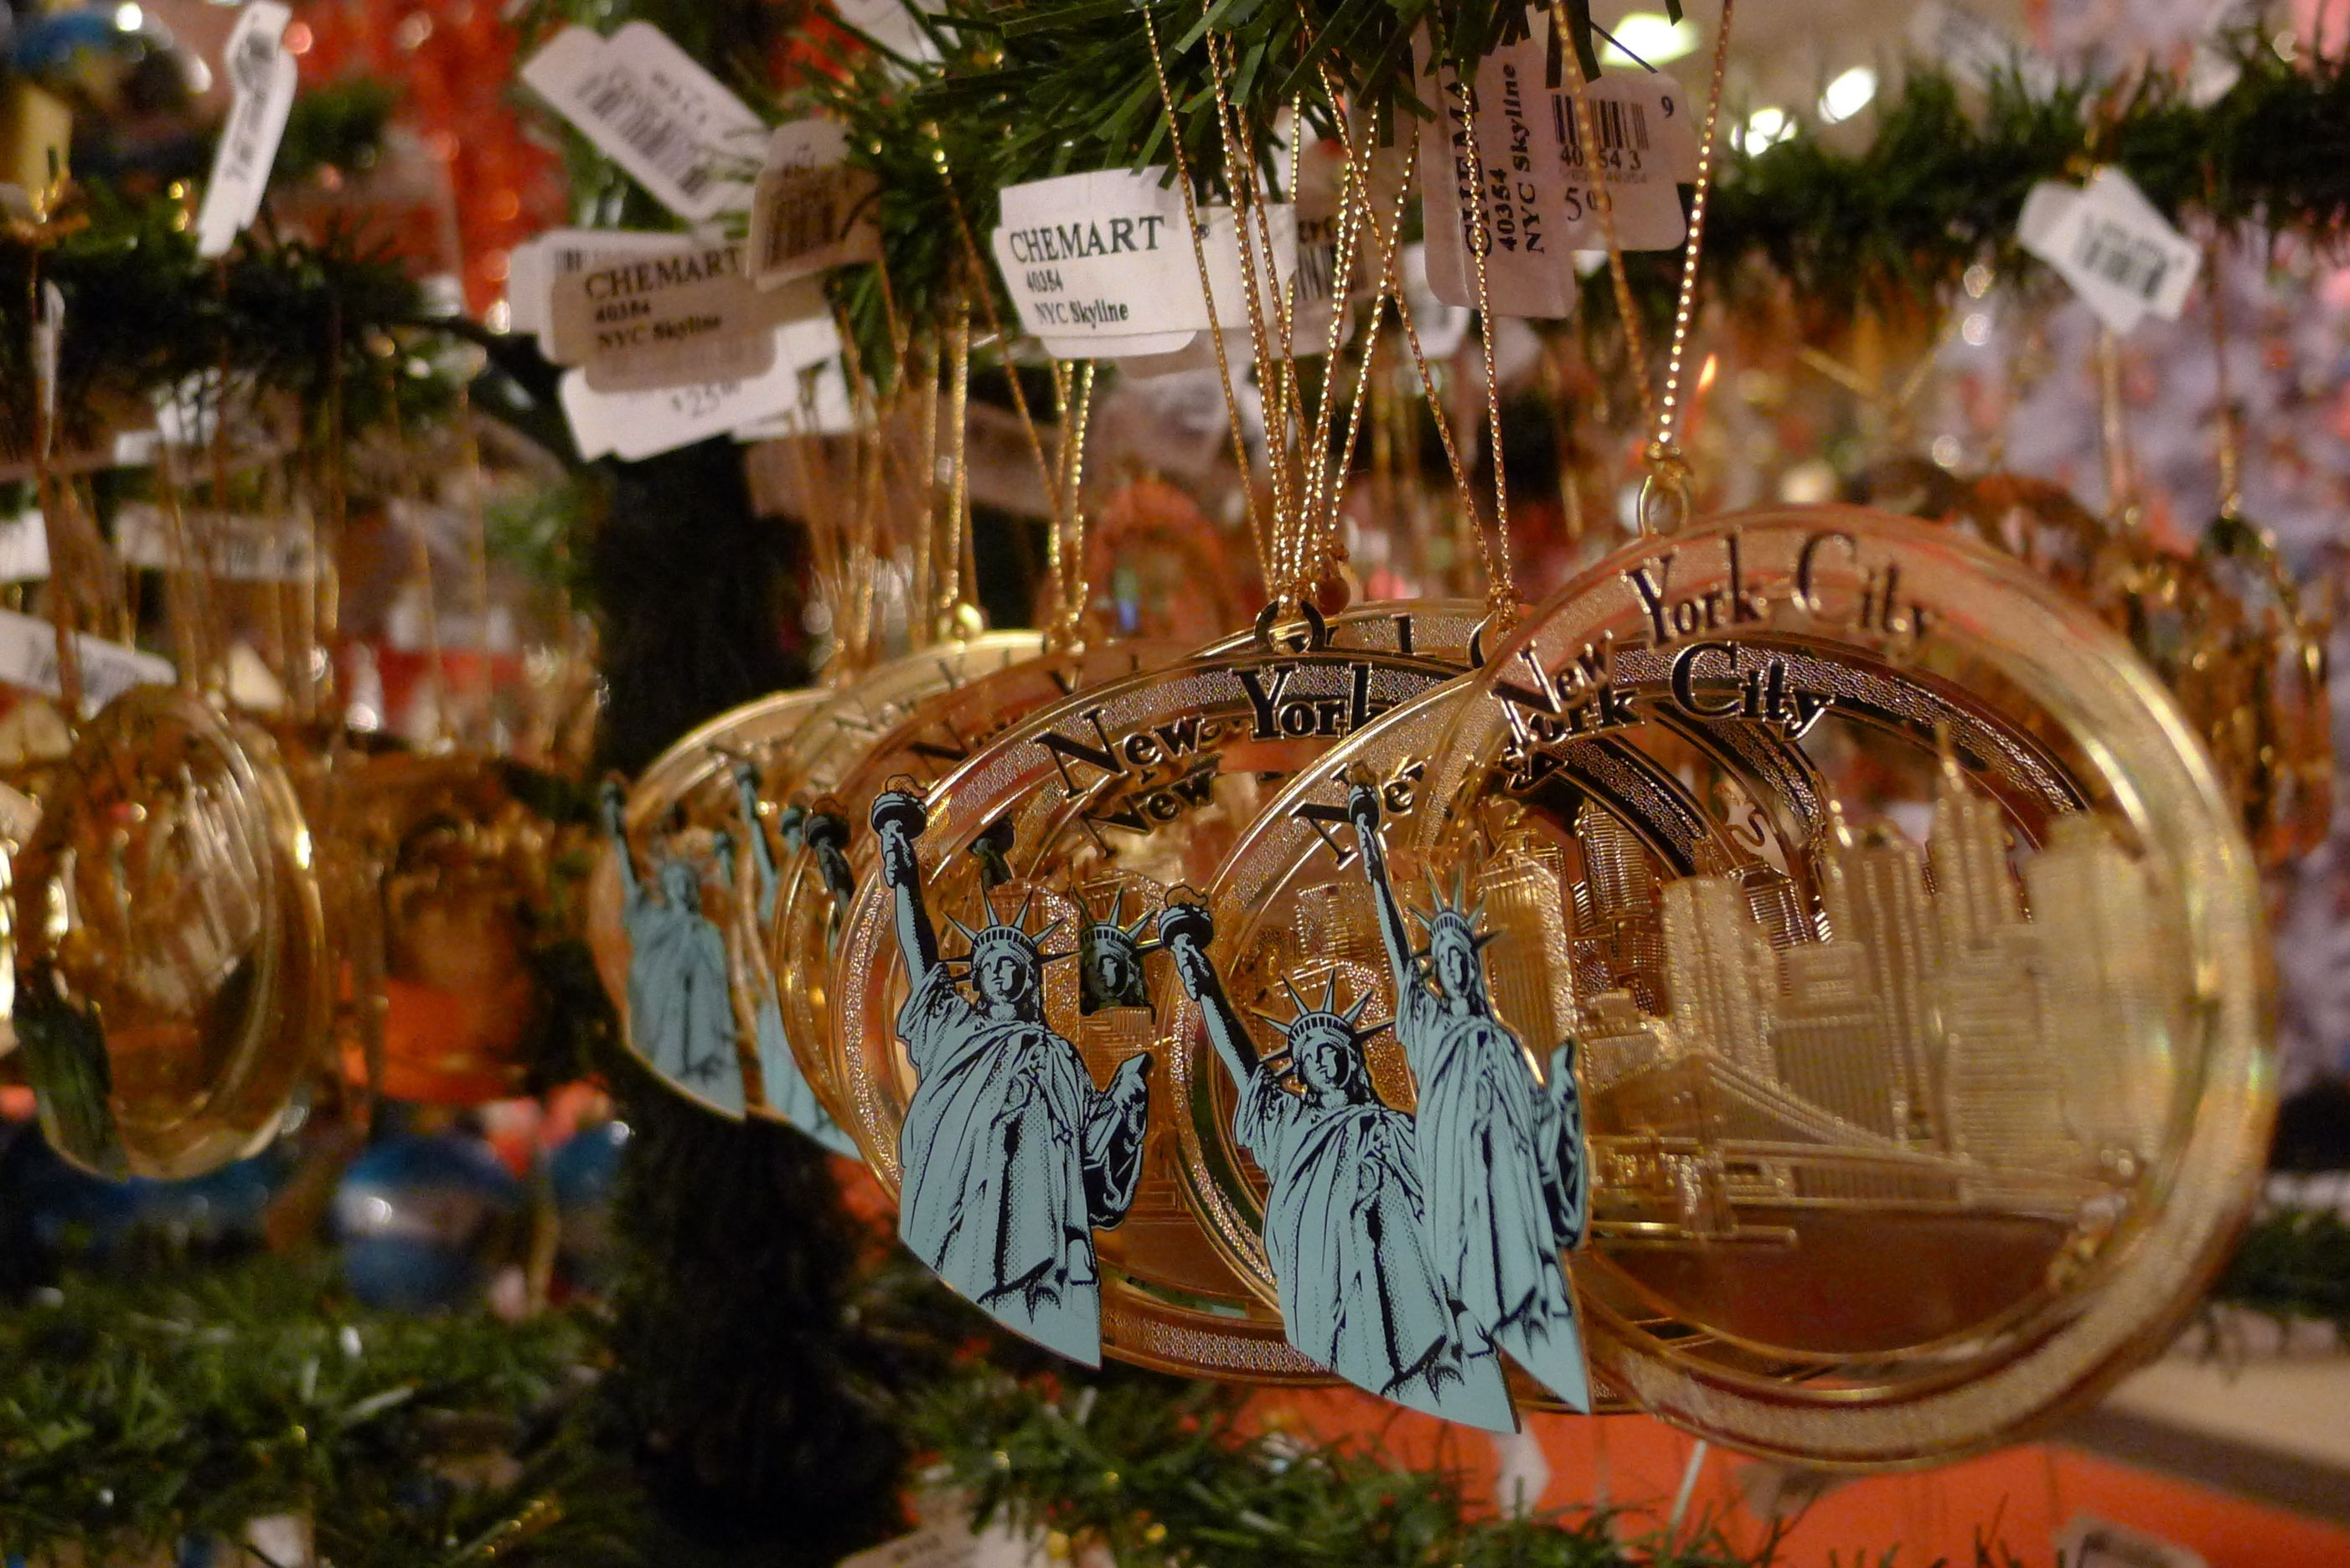 NYC themed Christmas ornaments at Macy\'s (Dec 2011) - Photo taken by ...